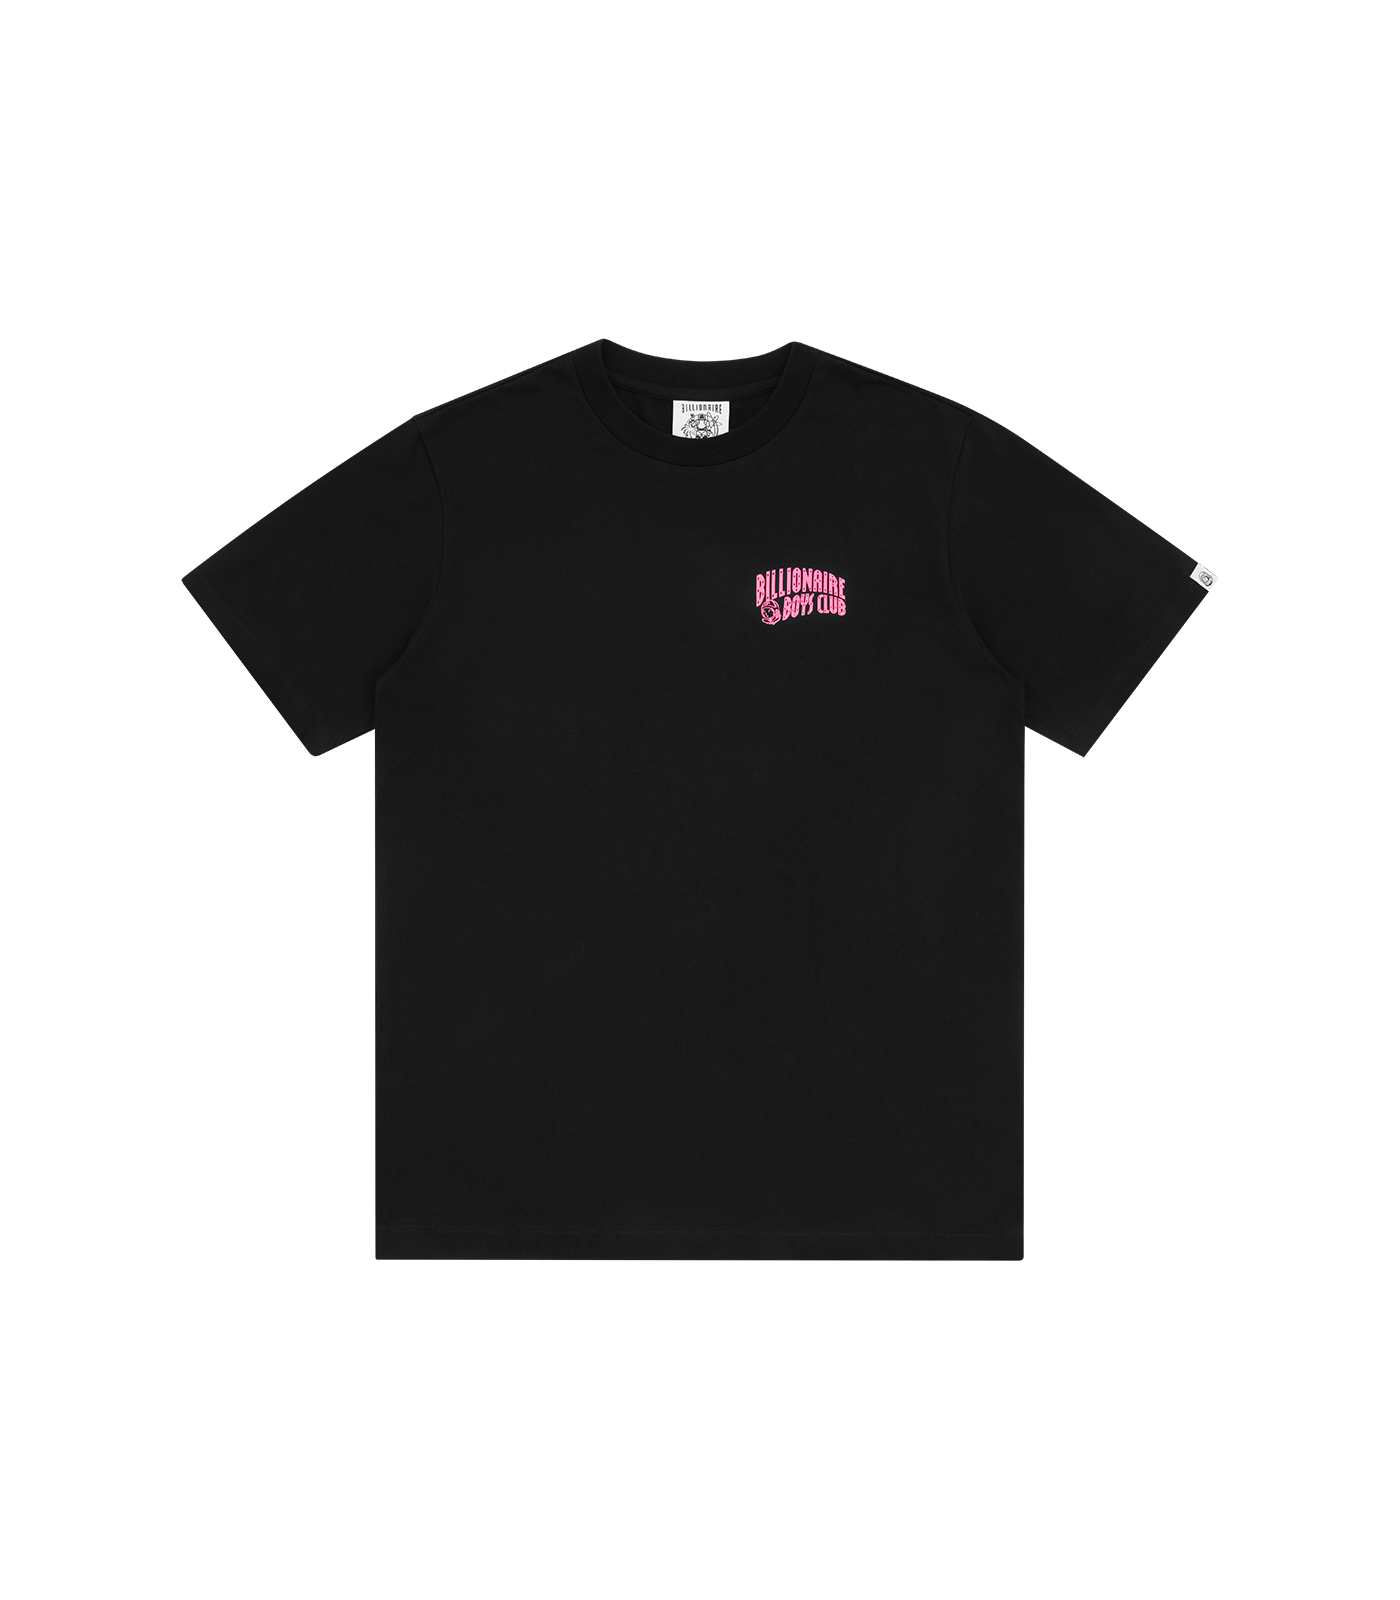 SMALL ARCH LOGO HIGHLIGHTER T-SHIRT - BLACK/PINK